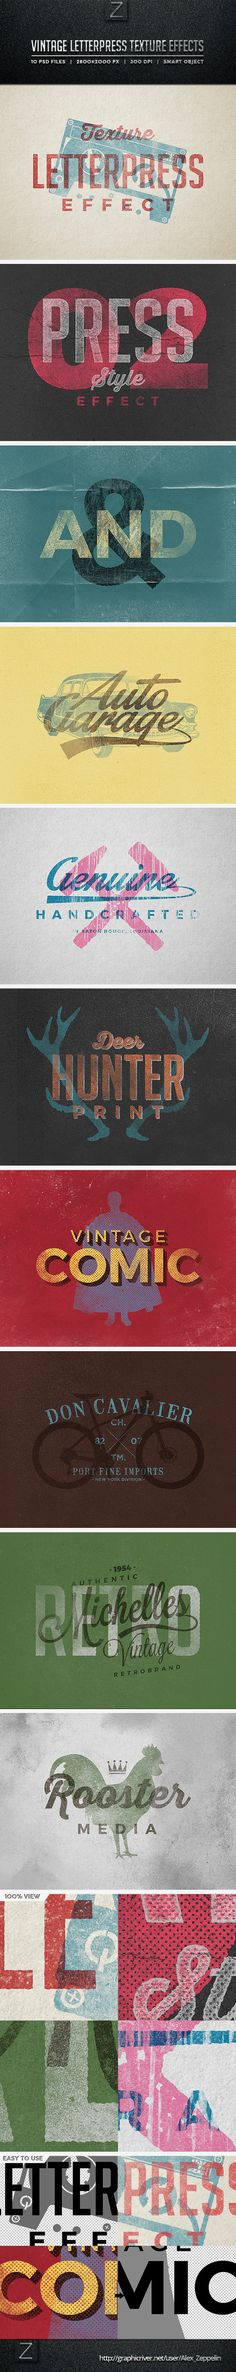 Vintage Letterpress Texture Effects - Text Effects Styles